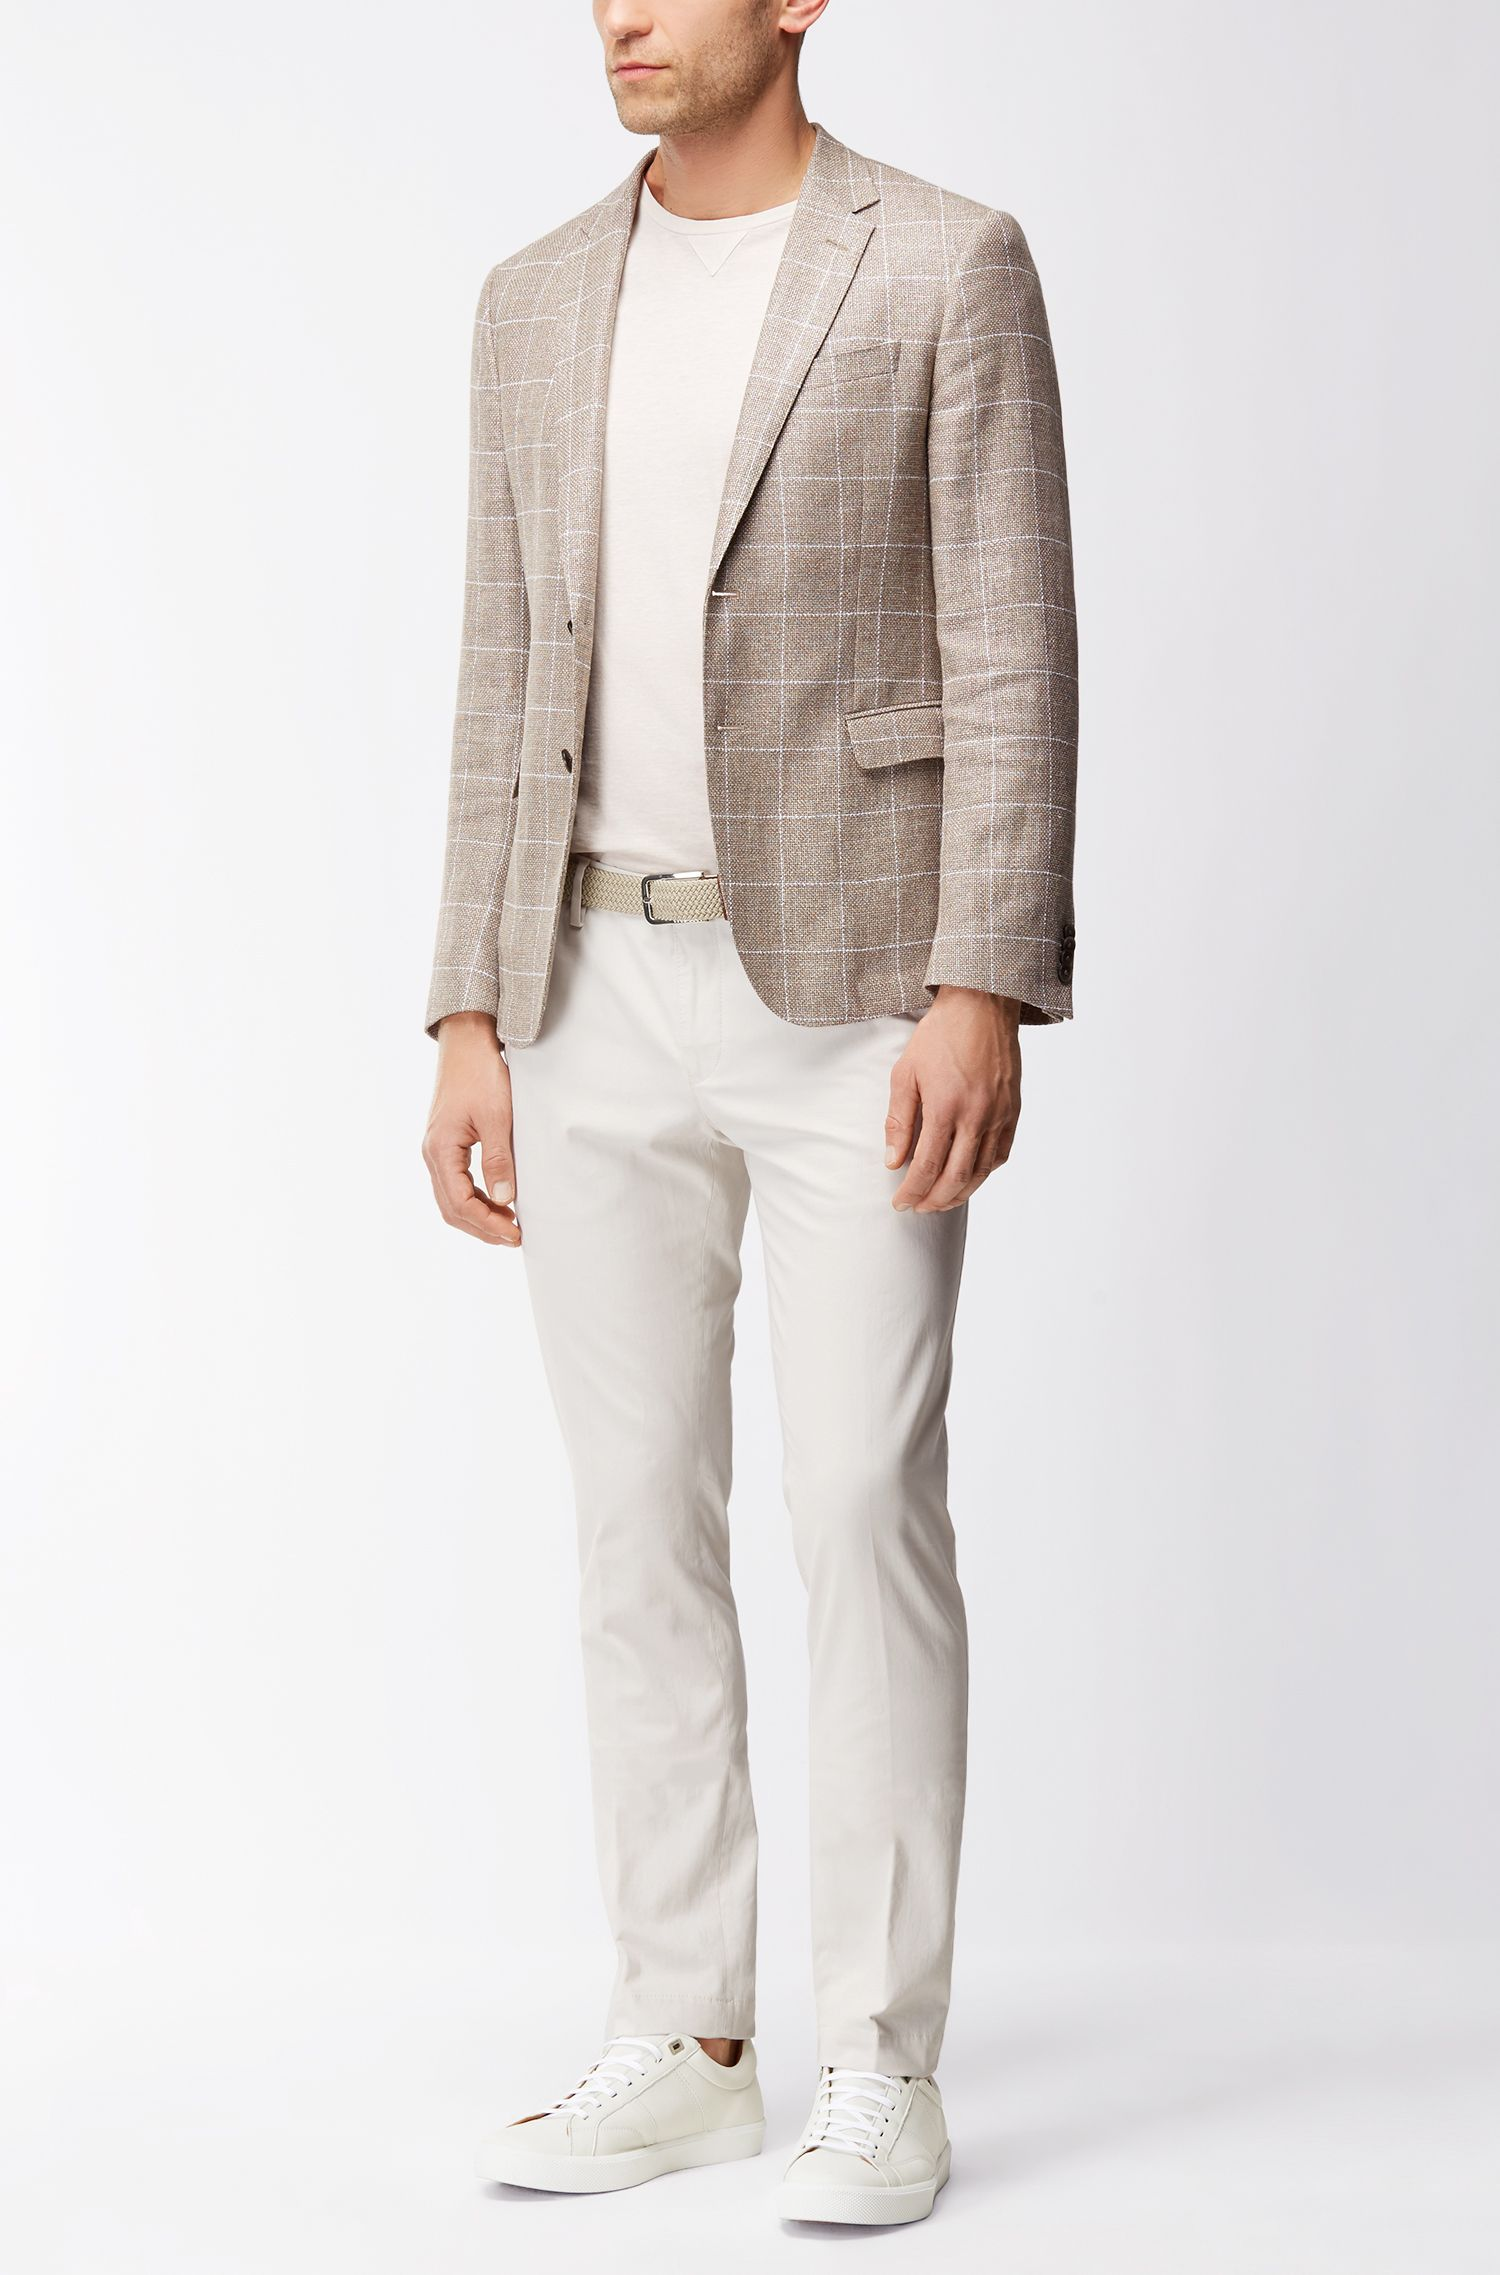 Windowpane Wool Linen Sport Coat, Slim Fit | Nobis